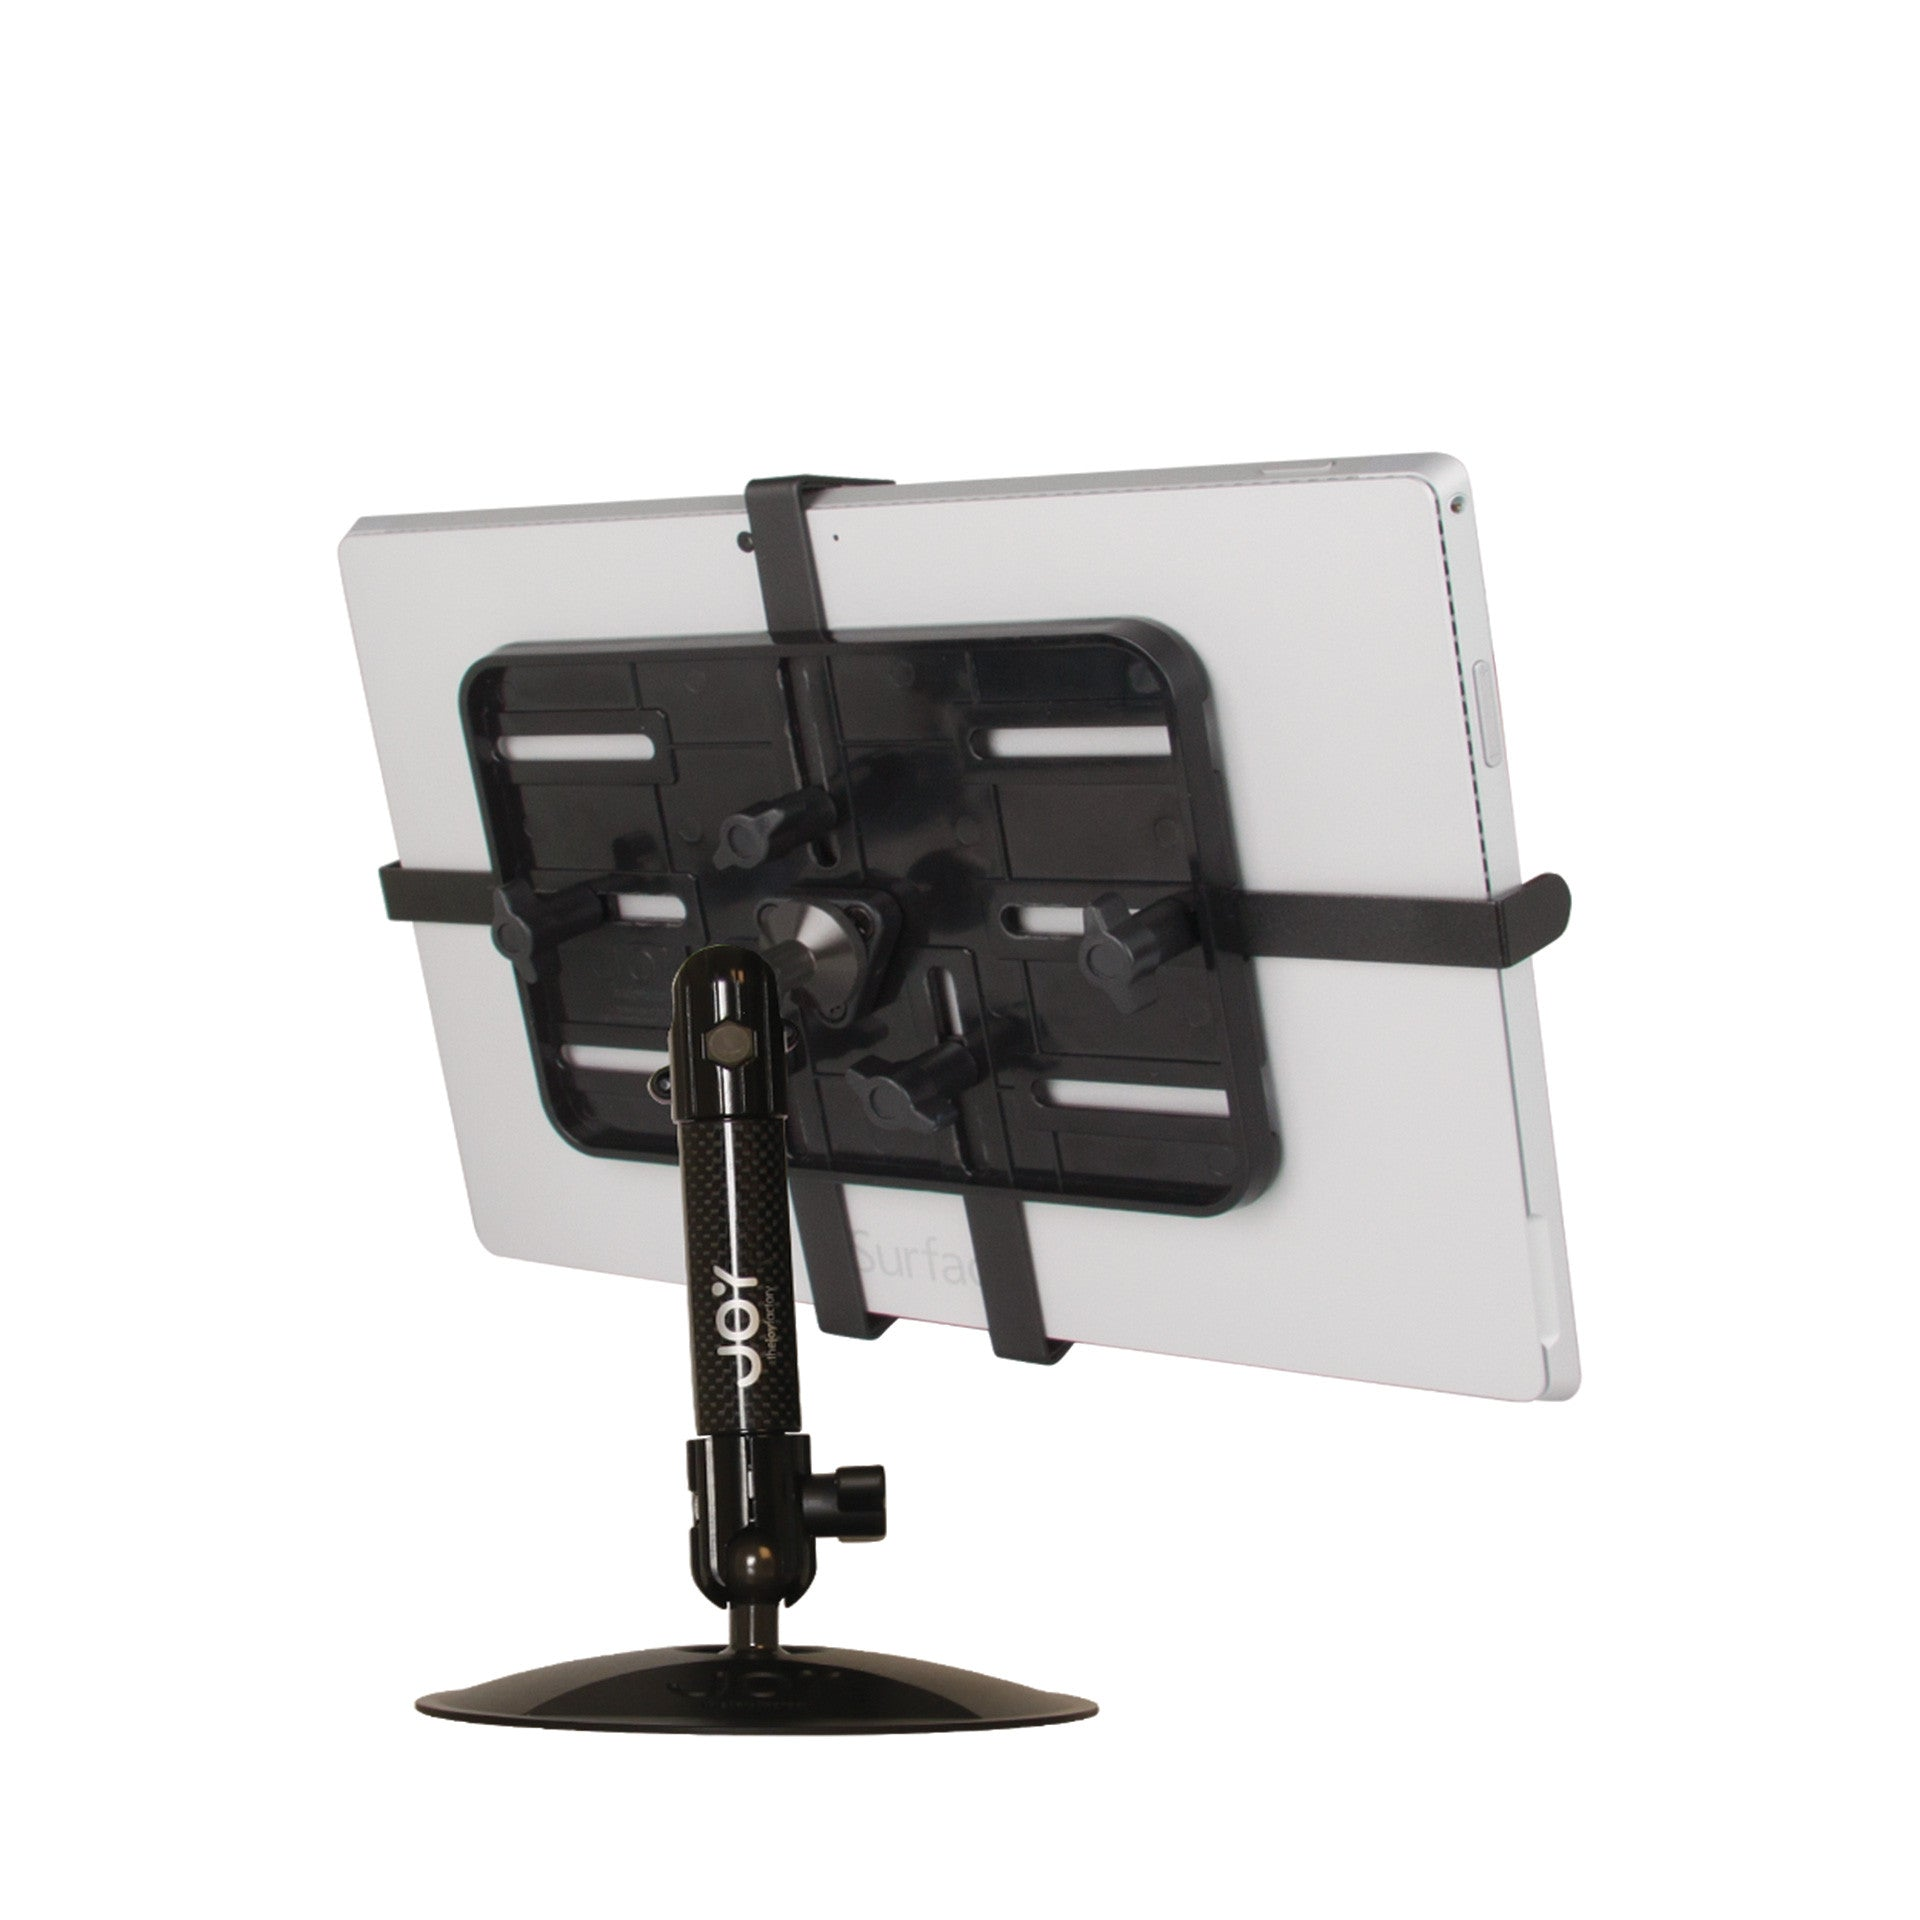 Universal Tablet Stand for 7 12 Tablets up to 1 thick